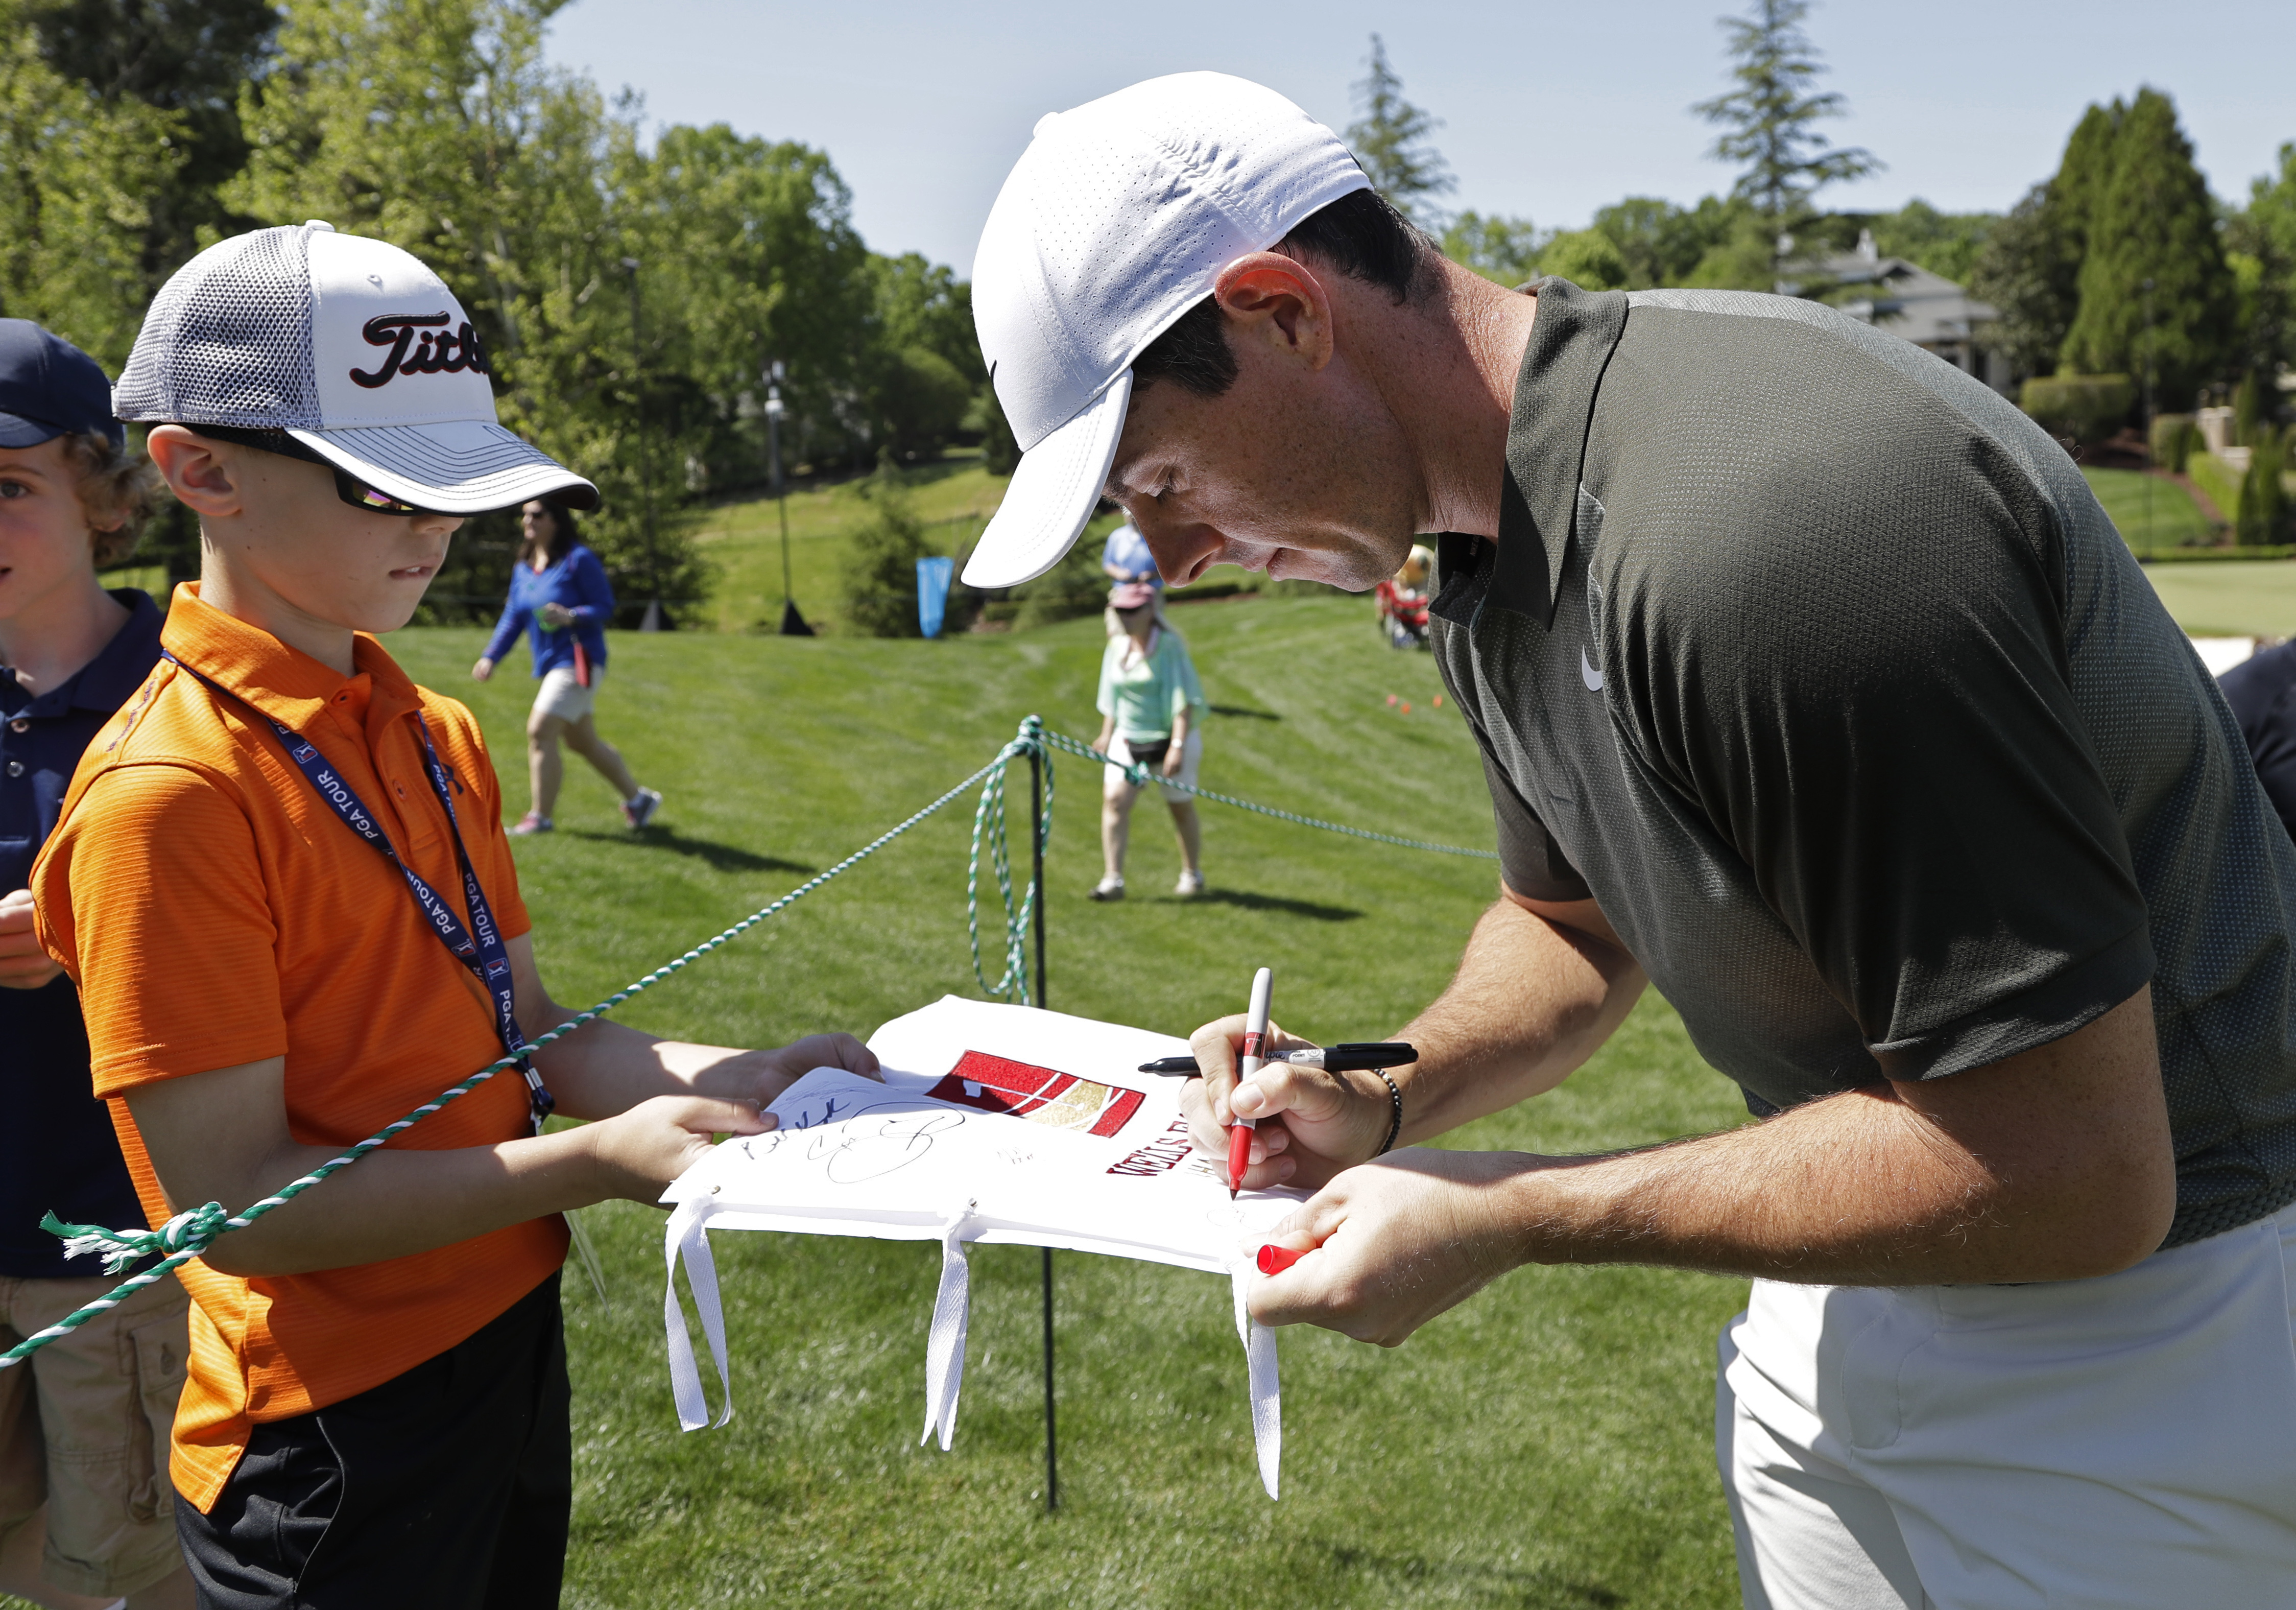 "<div class=""meta image-caption""><div class=""origin-logo origin-image ap""><span>AP</span></div><span class=""caption-text"">Rory McIlroy, of Northern Ireland, signs an autograph for a fan on the seventh hole. (Chuck Burton)</span></div>"